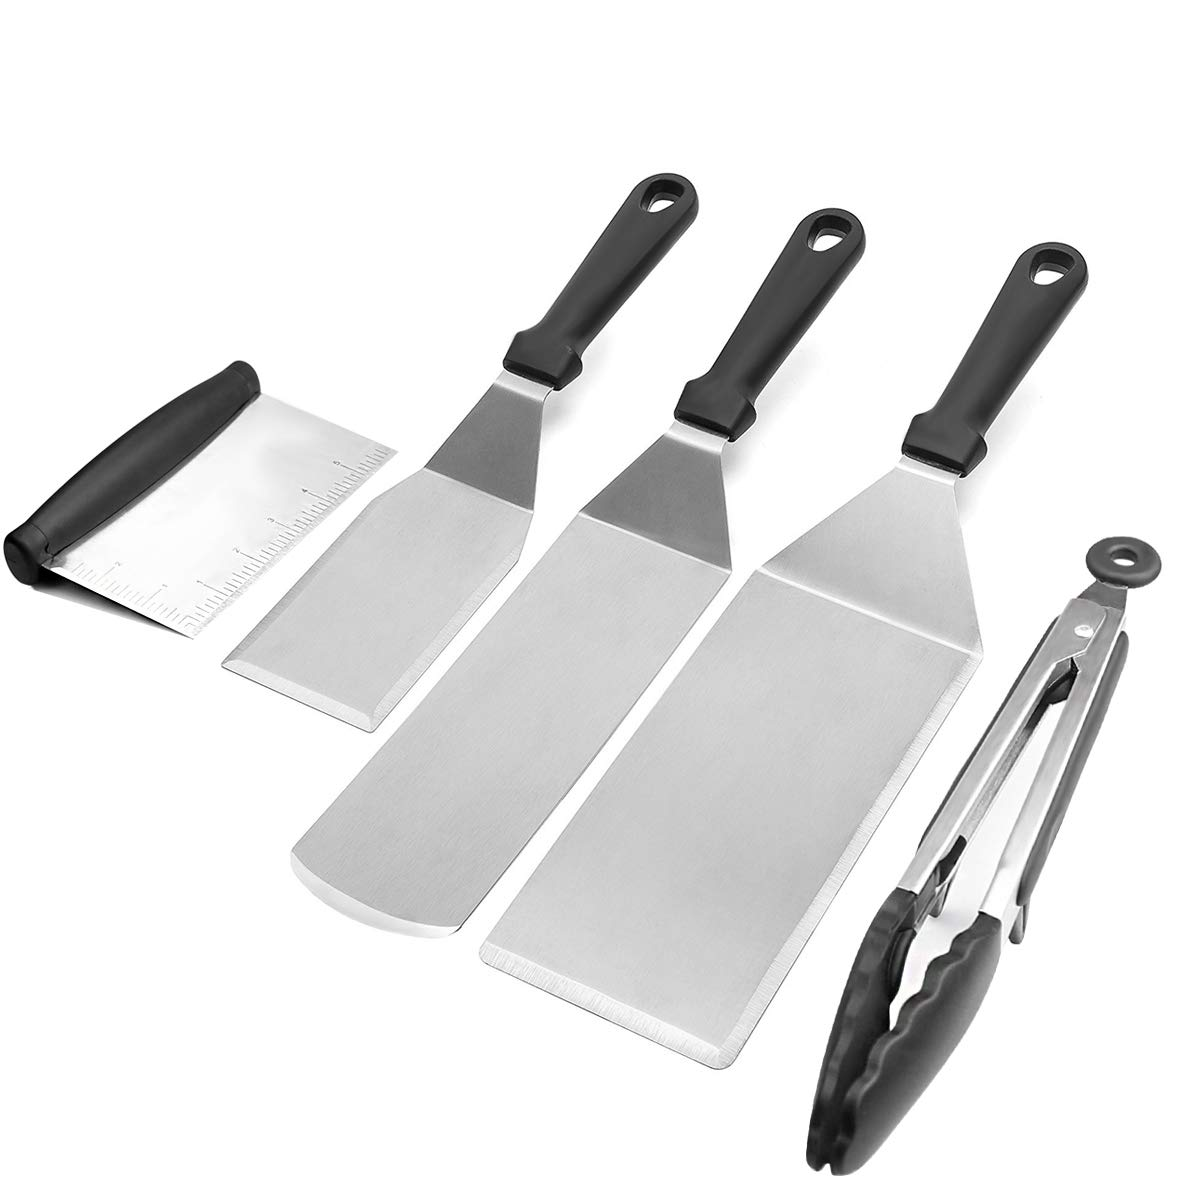 Griddle Accessories, Griddle BBQ Tool Kit Flat Top Grill Accessories 3 Griddle Spatula 1 Griddle Scraper and 1 Tong, 5 PCS Great for Outdoor Camping Flat Top Cooking Stainless Steel Dishwasher Safe Ltd.